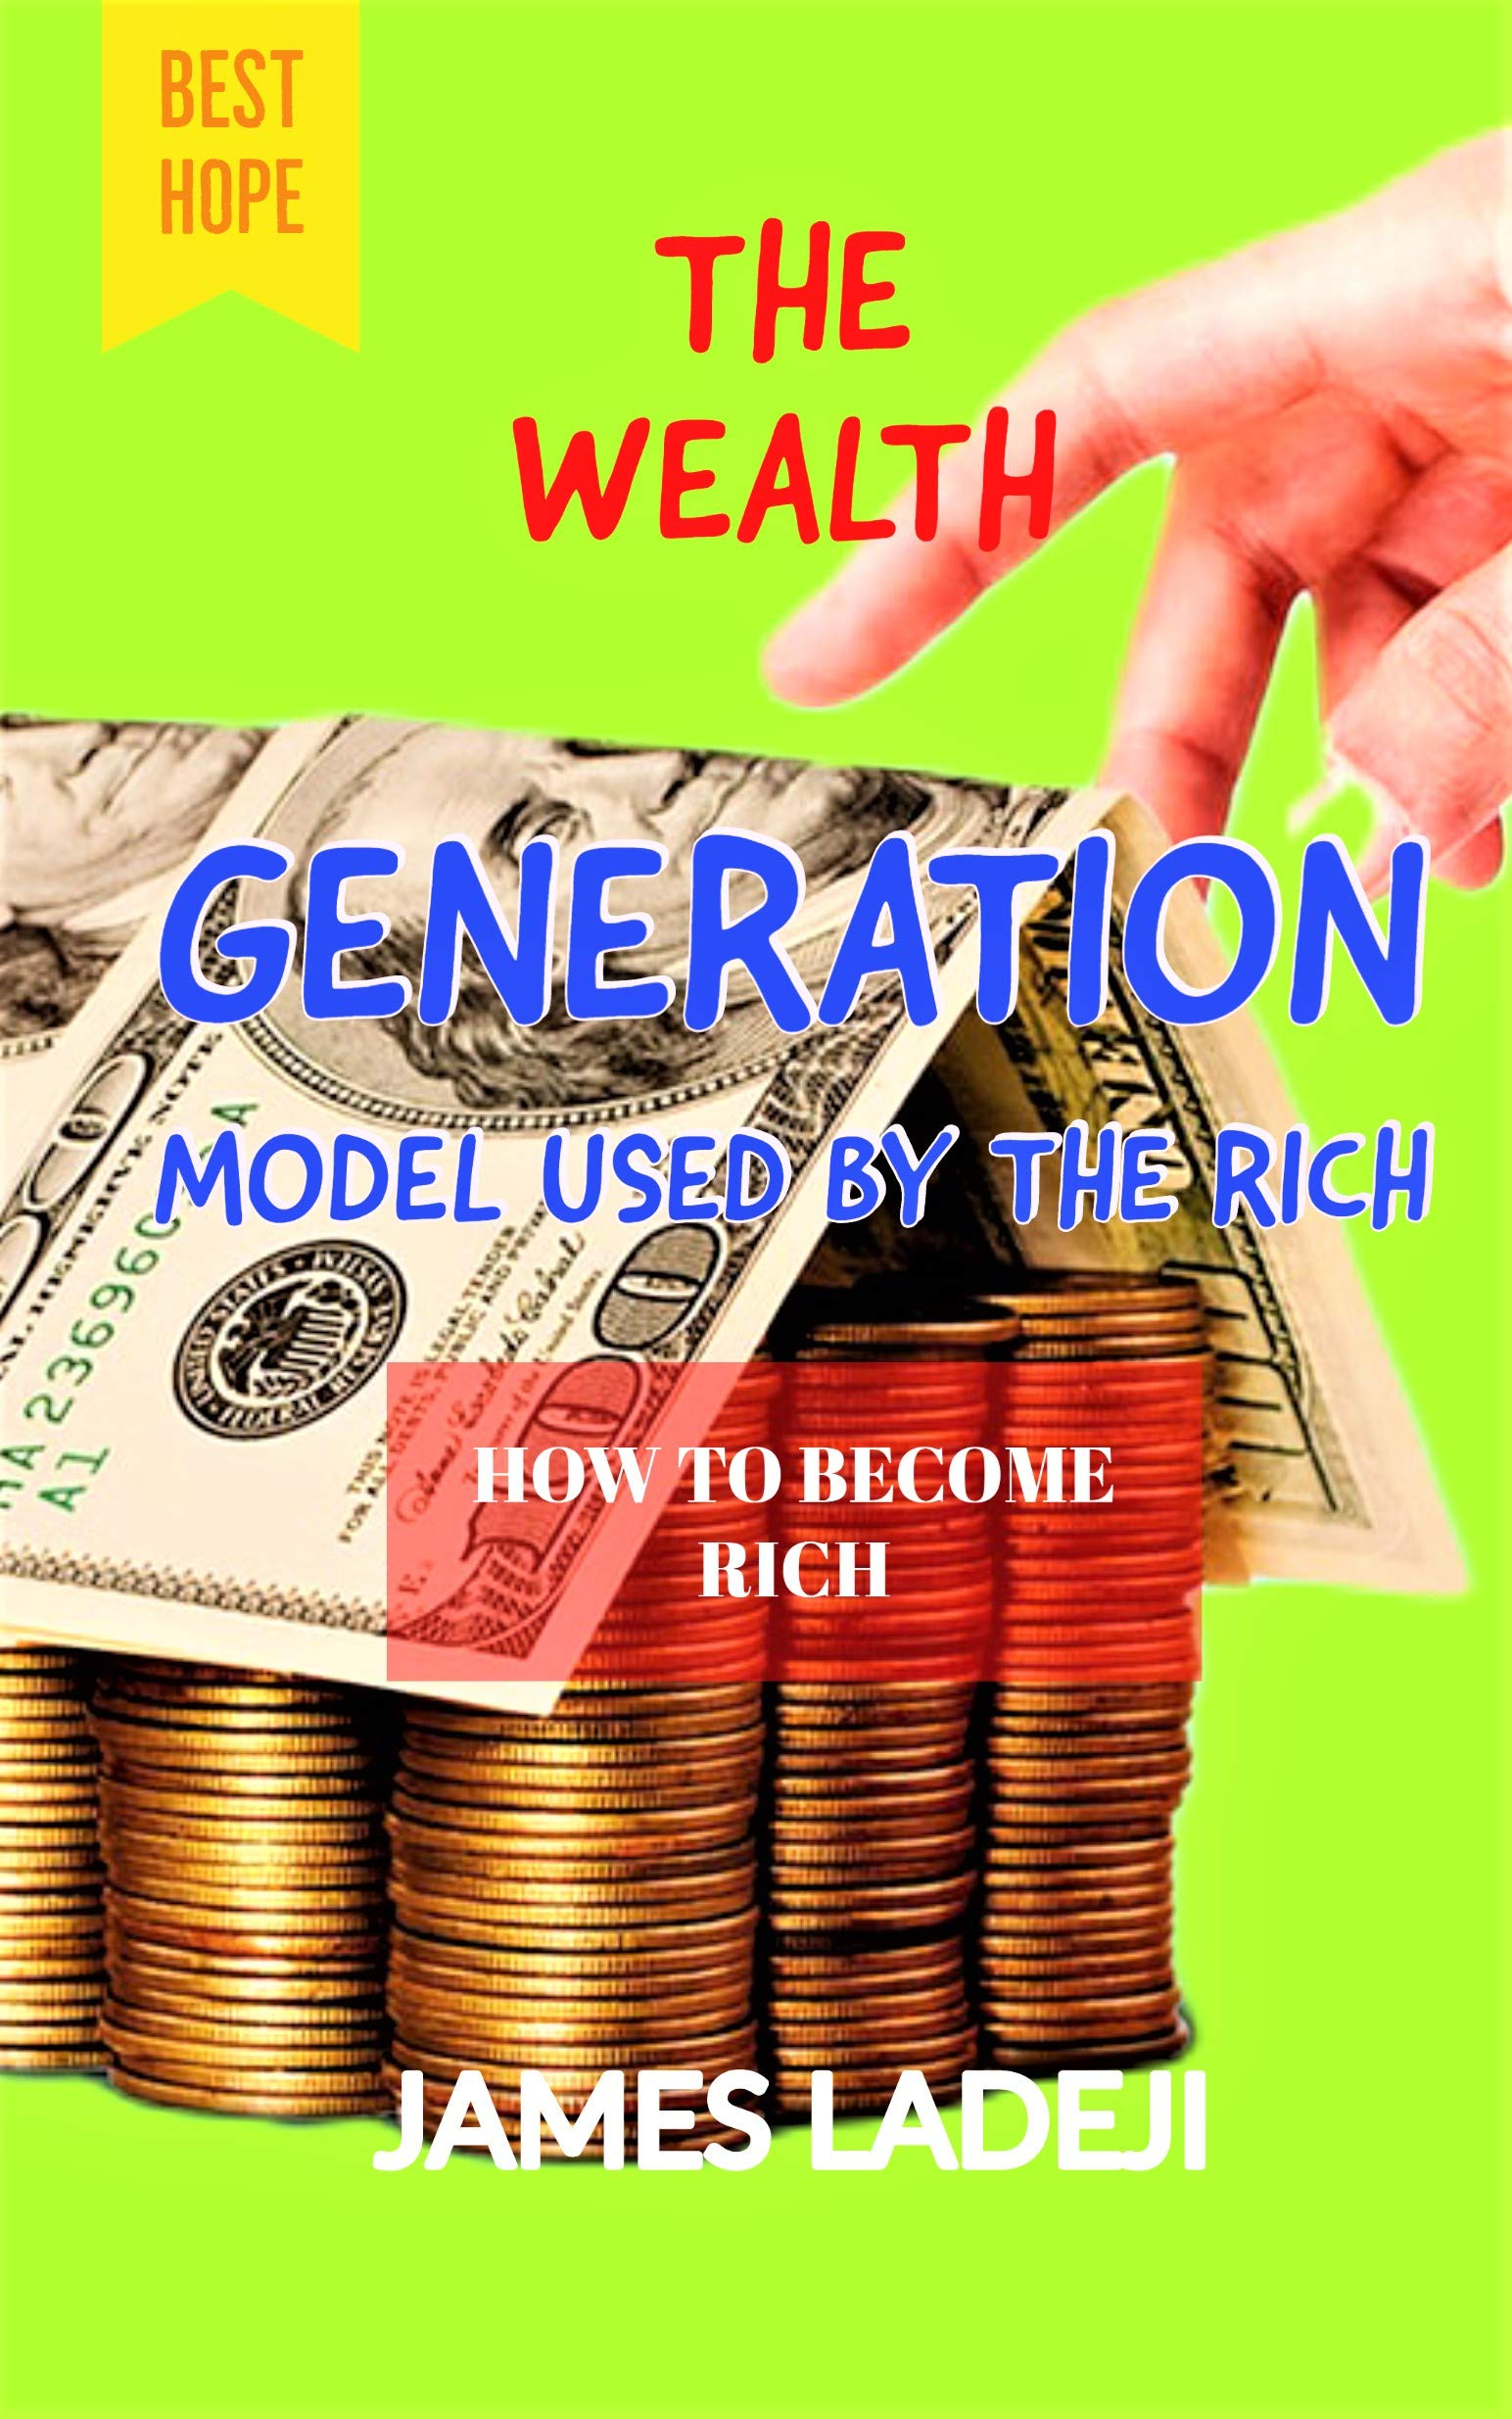 THE WEALTH GENERATION MODEL USED BY THE RICH: HOW TO BECOME RICH